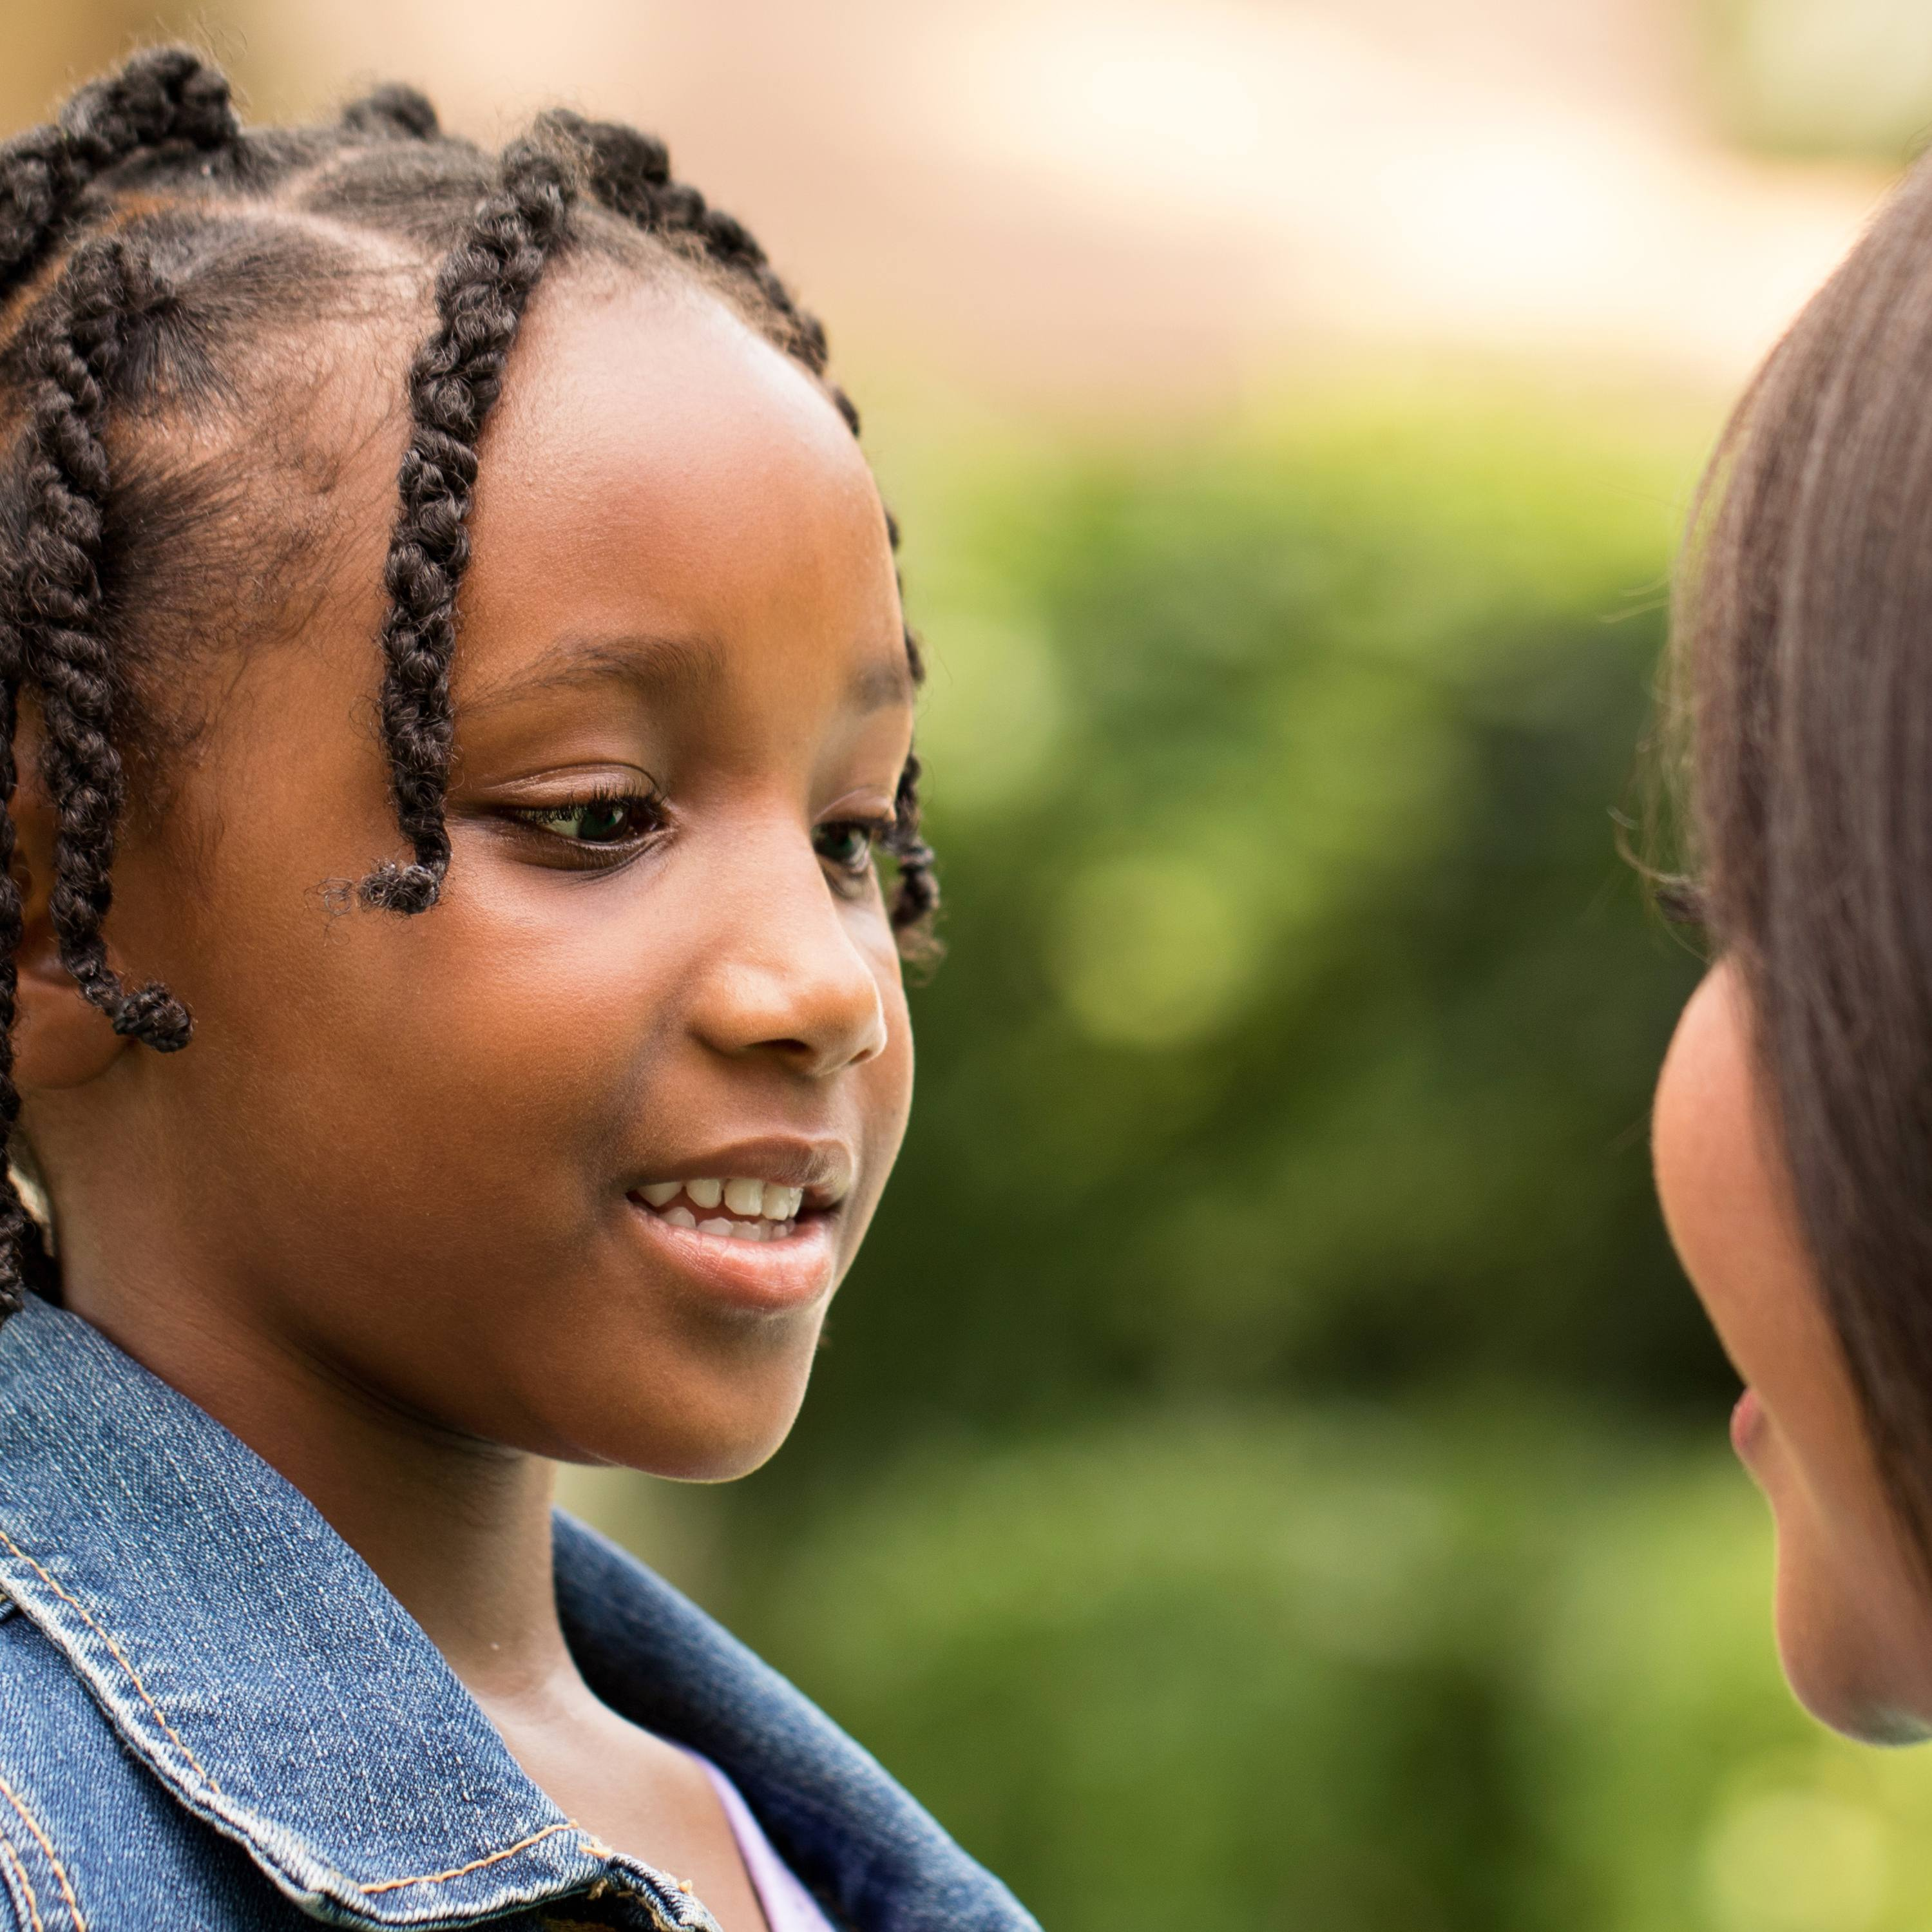 a young Black school-aged girl with African braids, smiling and talking to an adult woman, perhaps her mother or teacher